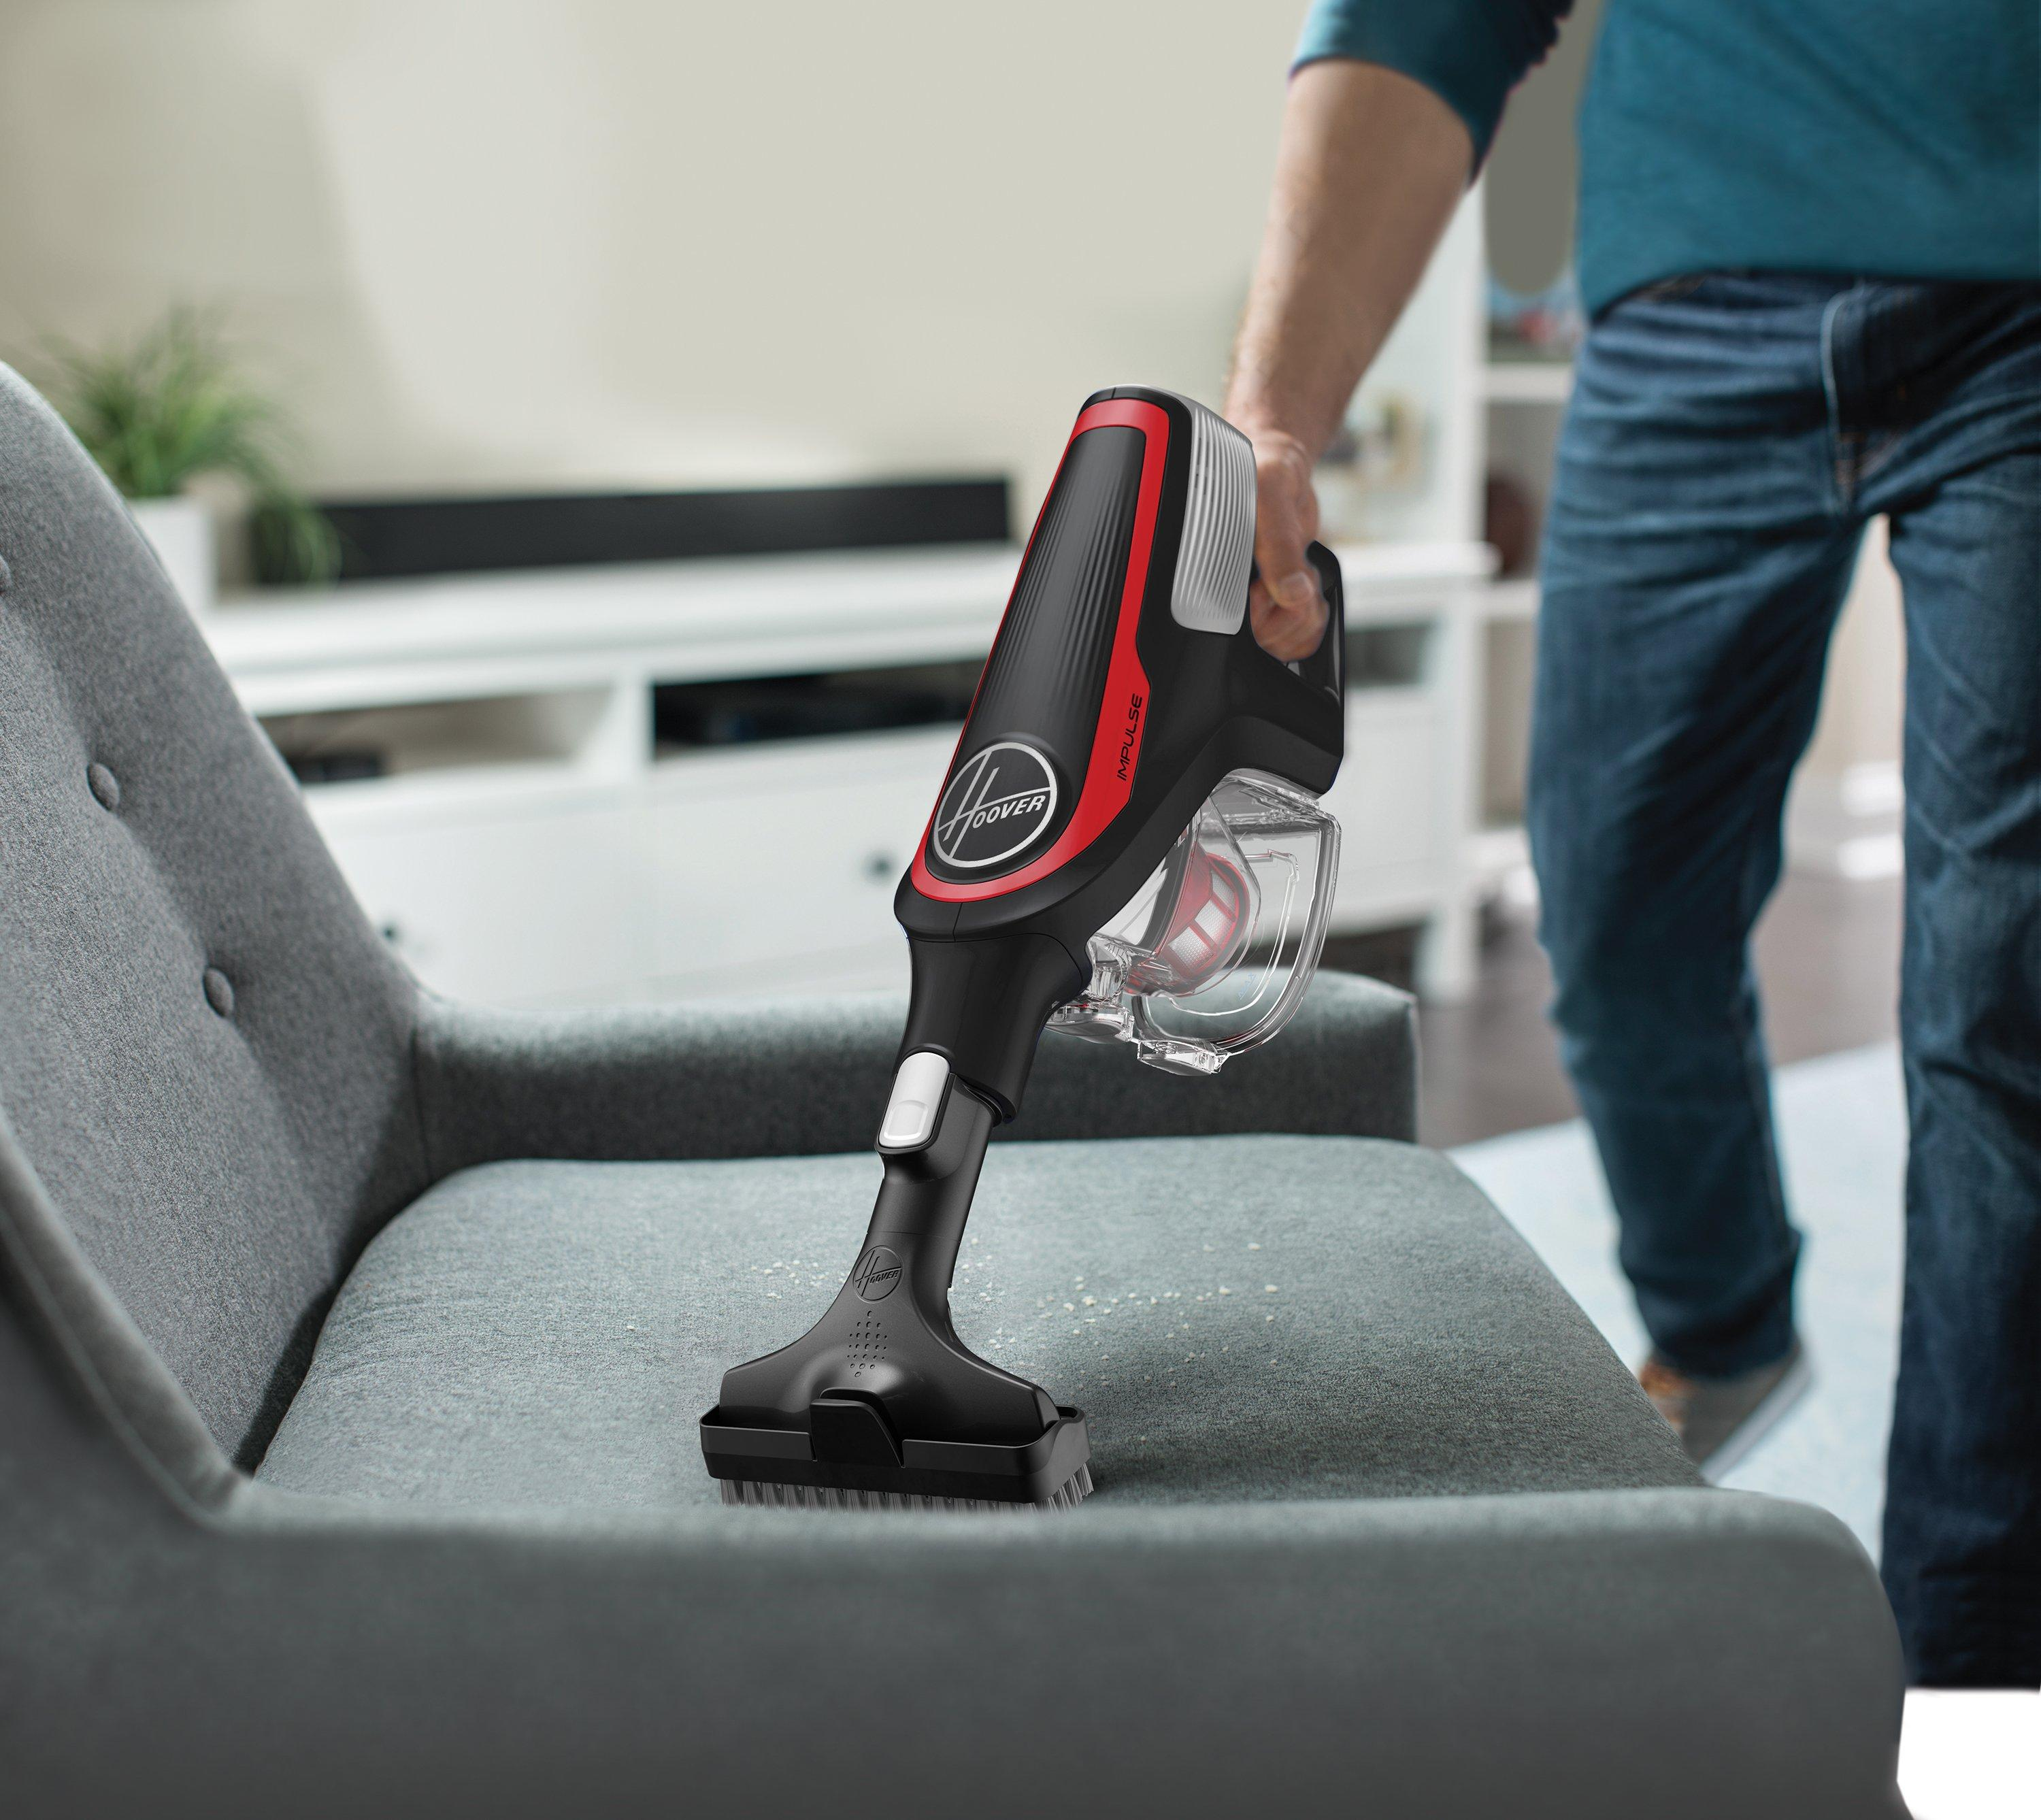 Expert Series Pet Impulse Cordless Stick Vacuum3